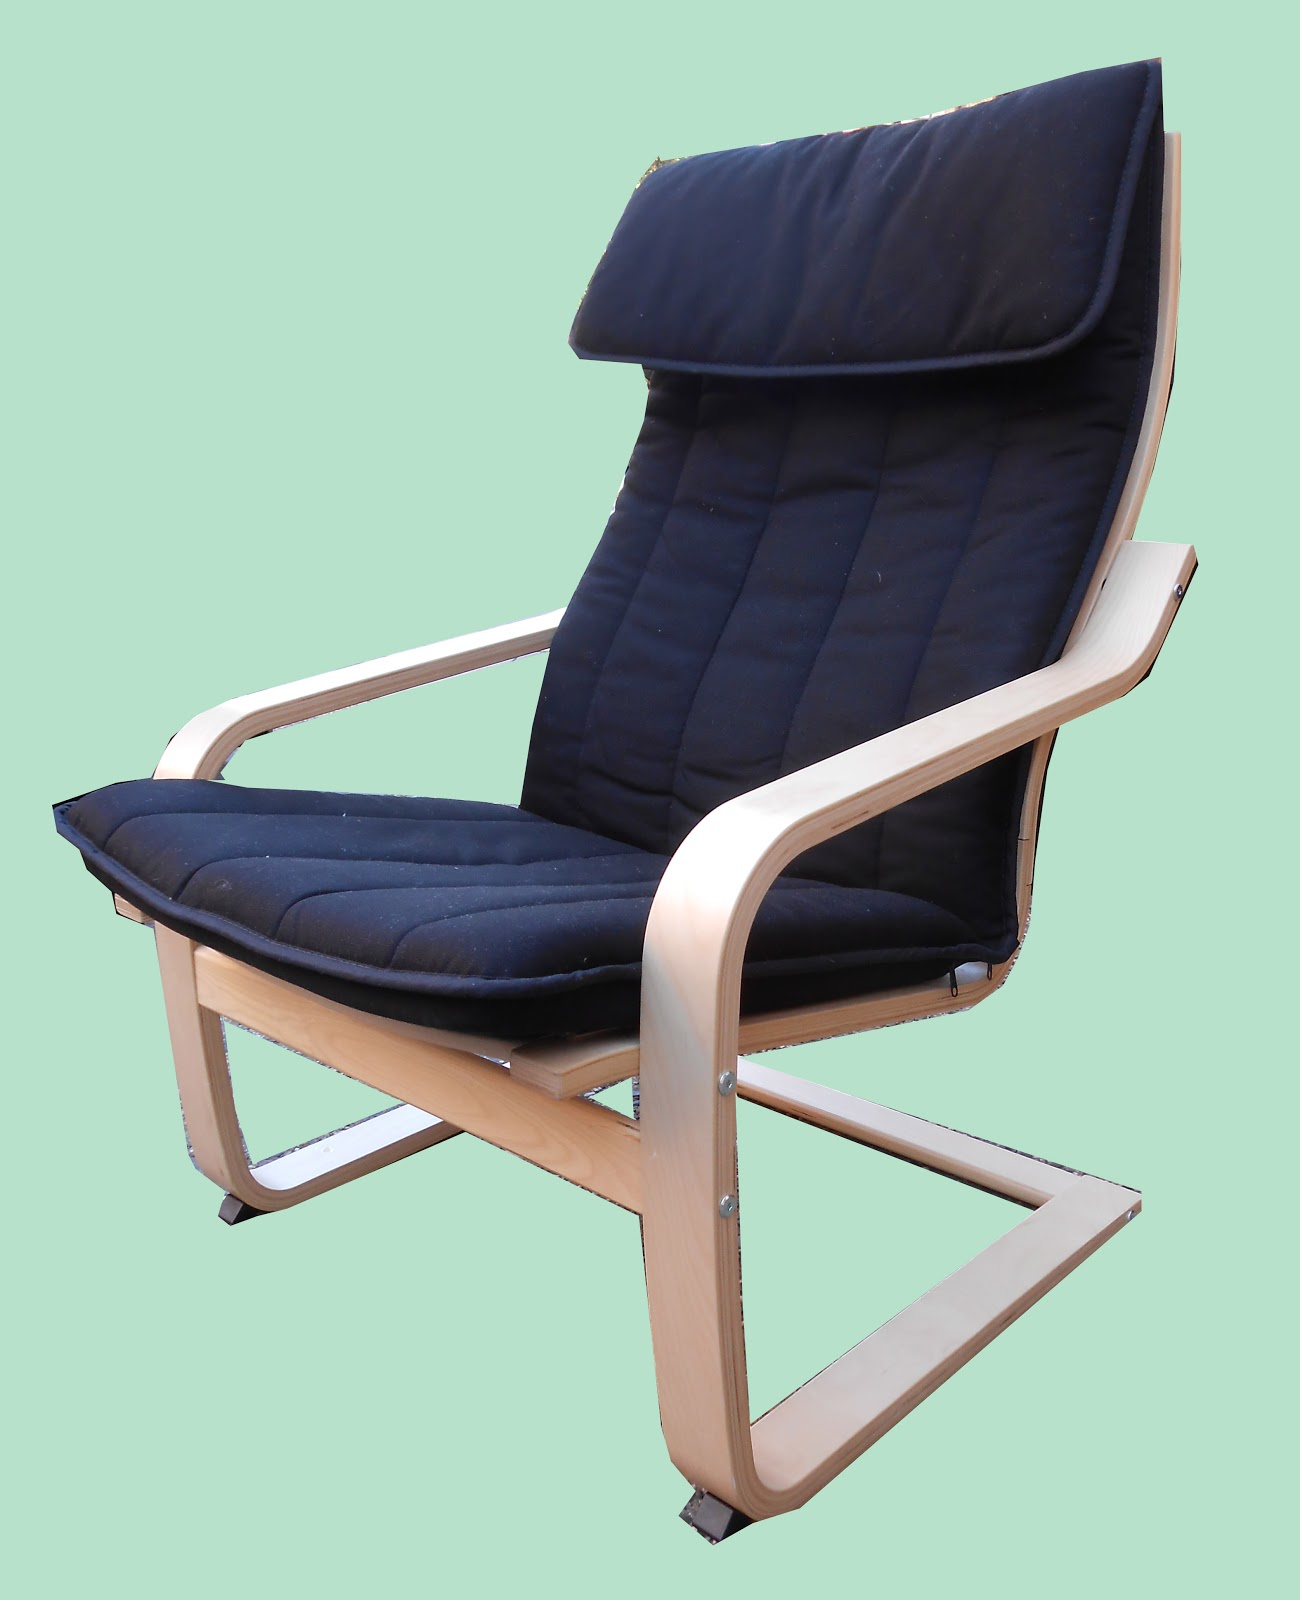 Uhuru Furniture & Collectibles: IKEA Poang Lounge Chair- SOLD